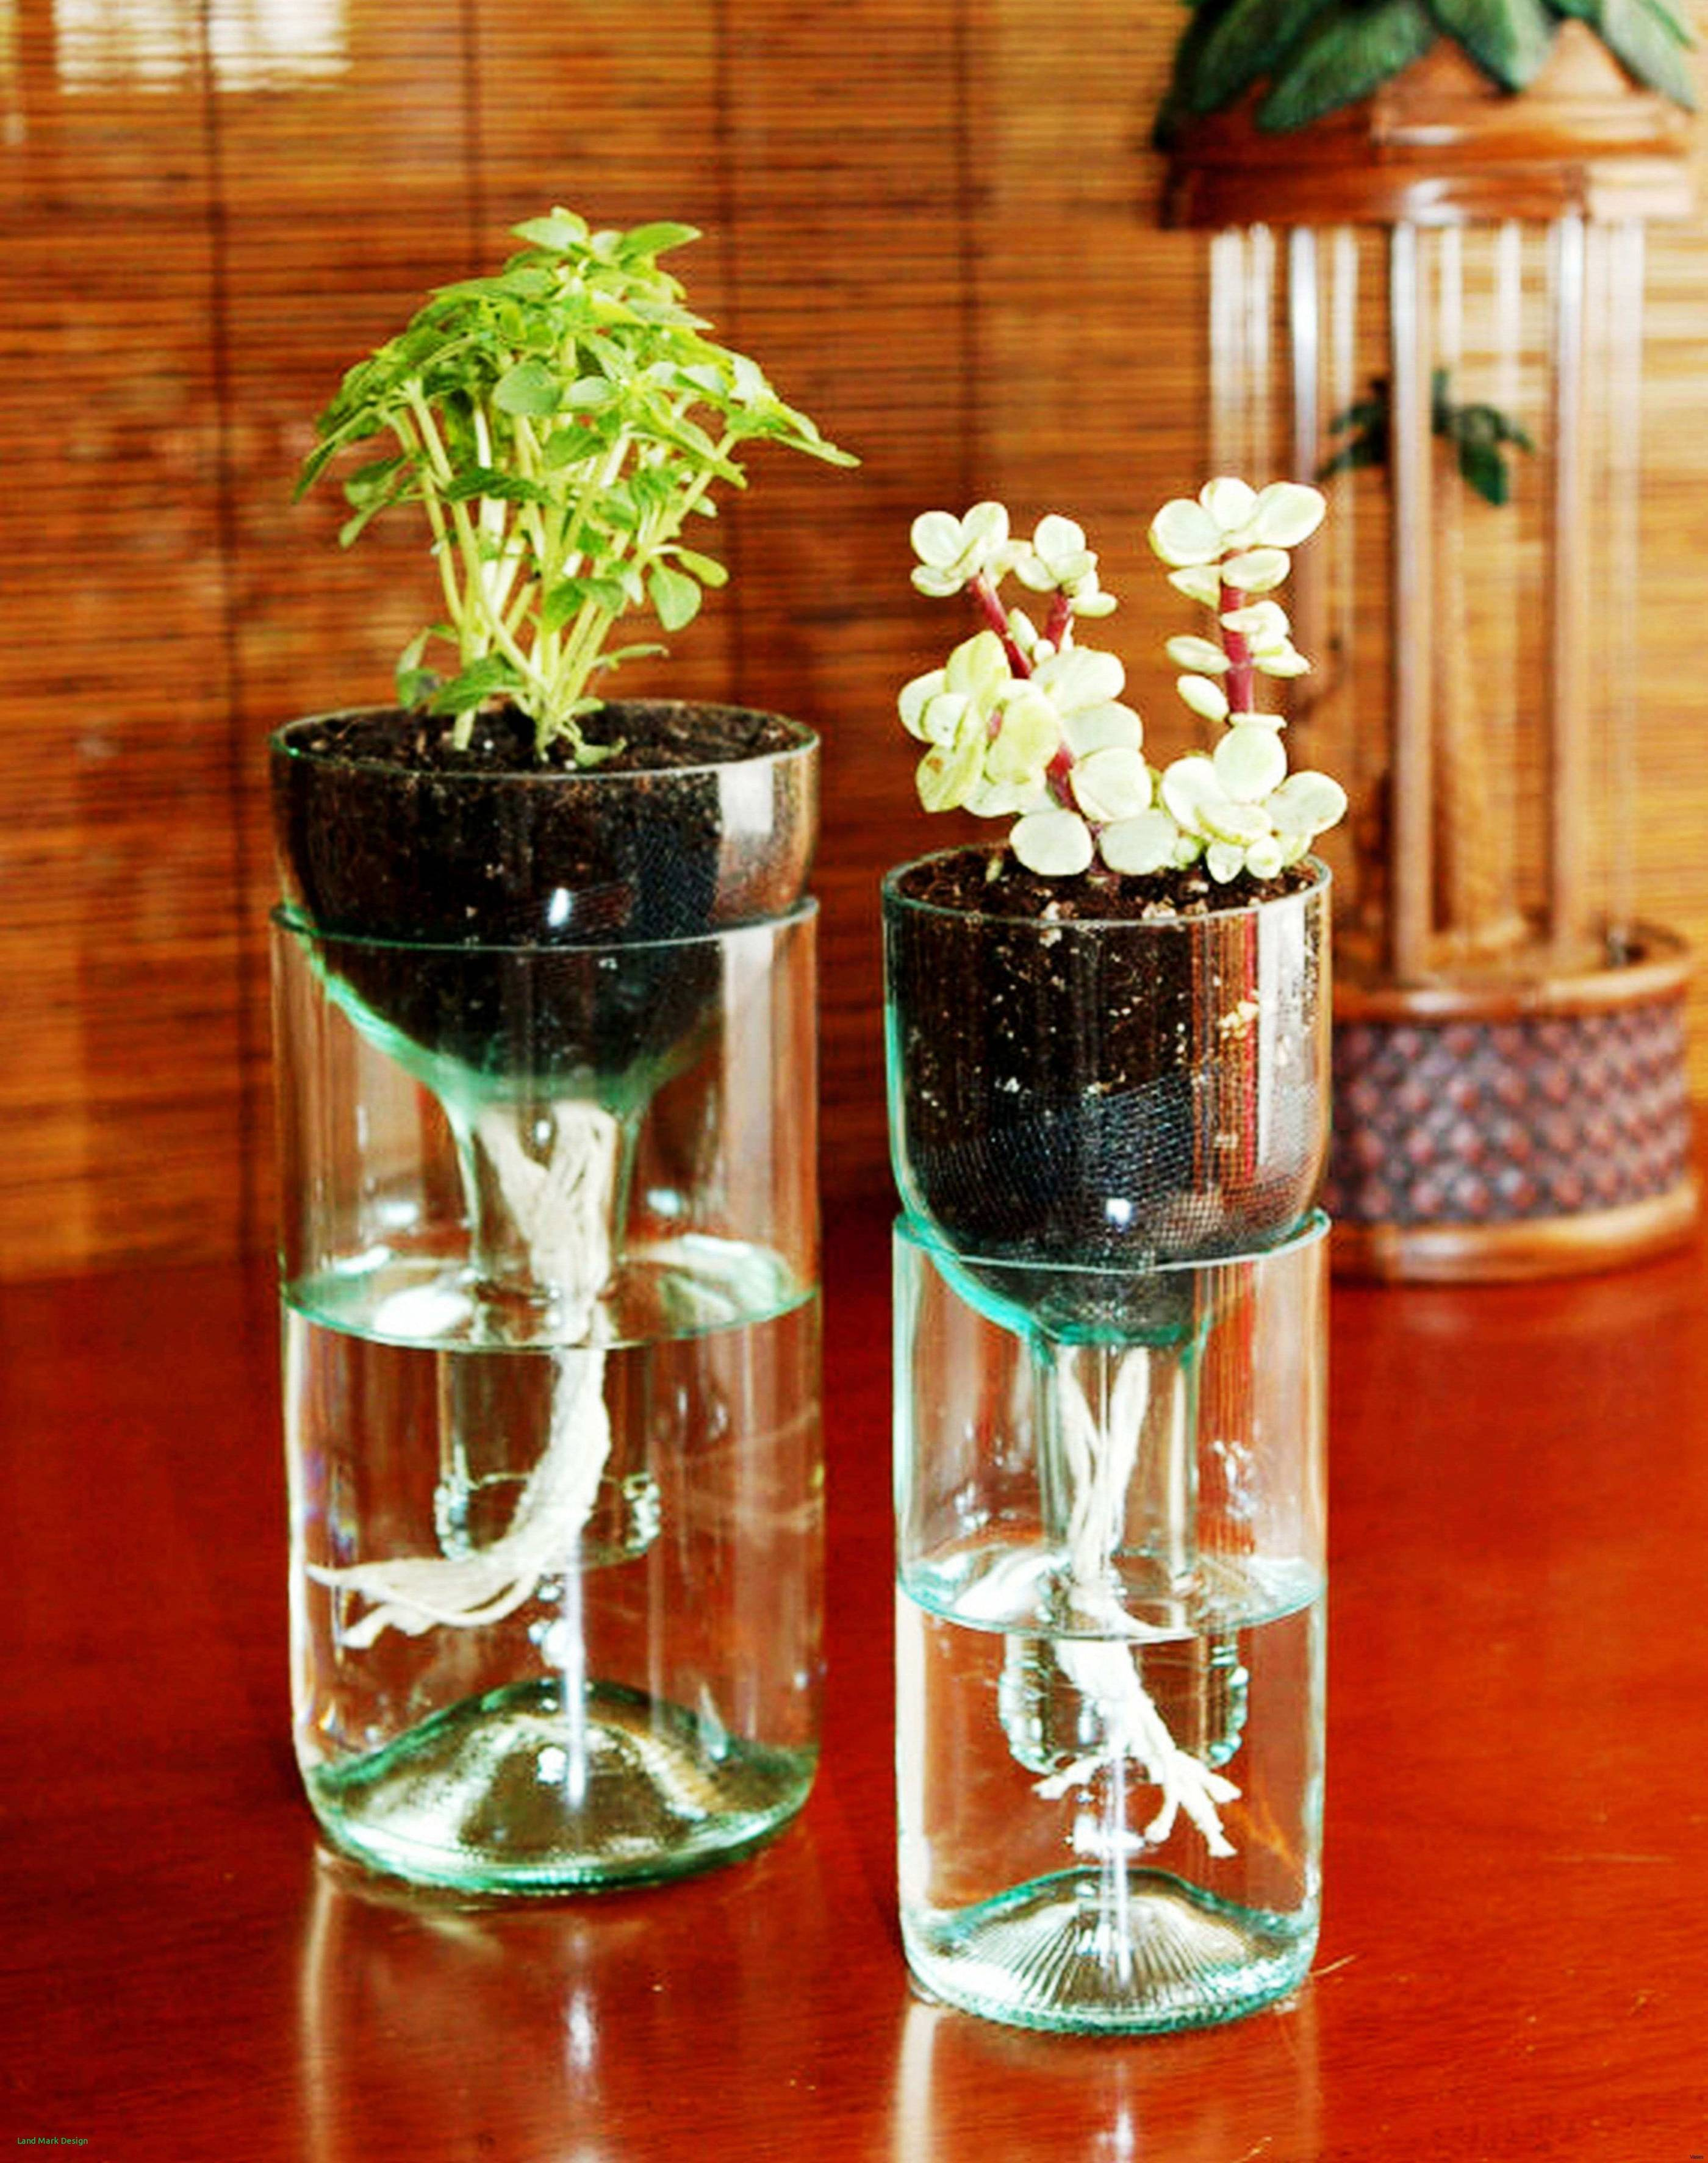 decorative vase filler ideas of 10 flower pot ideas favorite for elegant room splusna page in stunning flower vase decoration home on diy interior ideas with homeh vases homei 0d